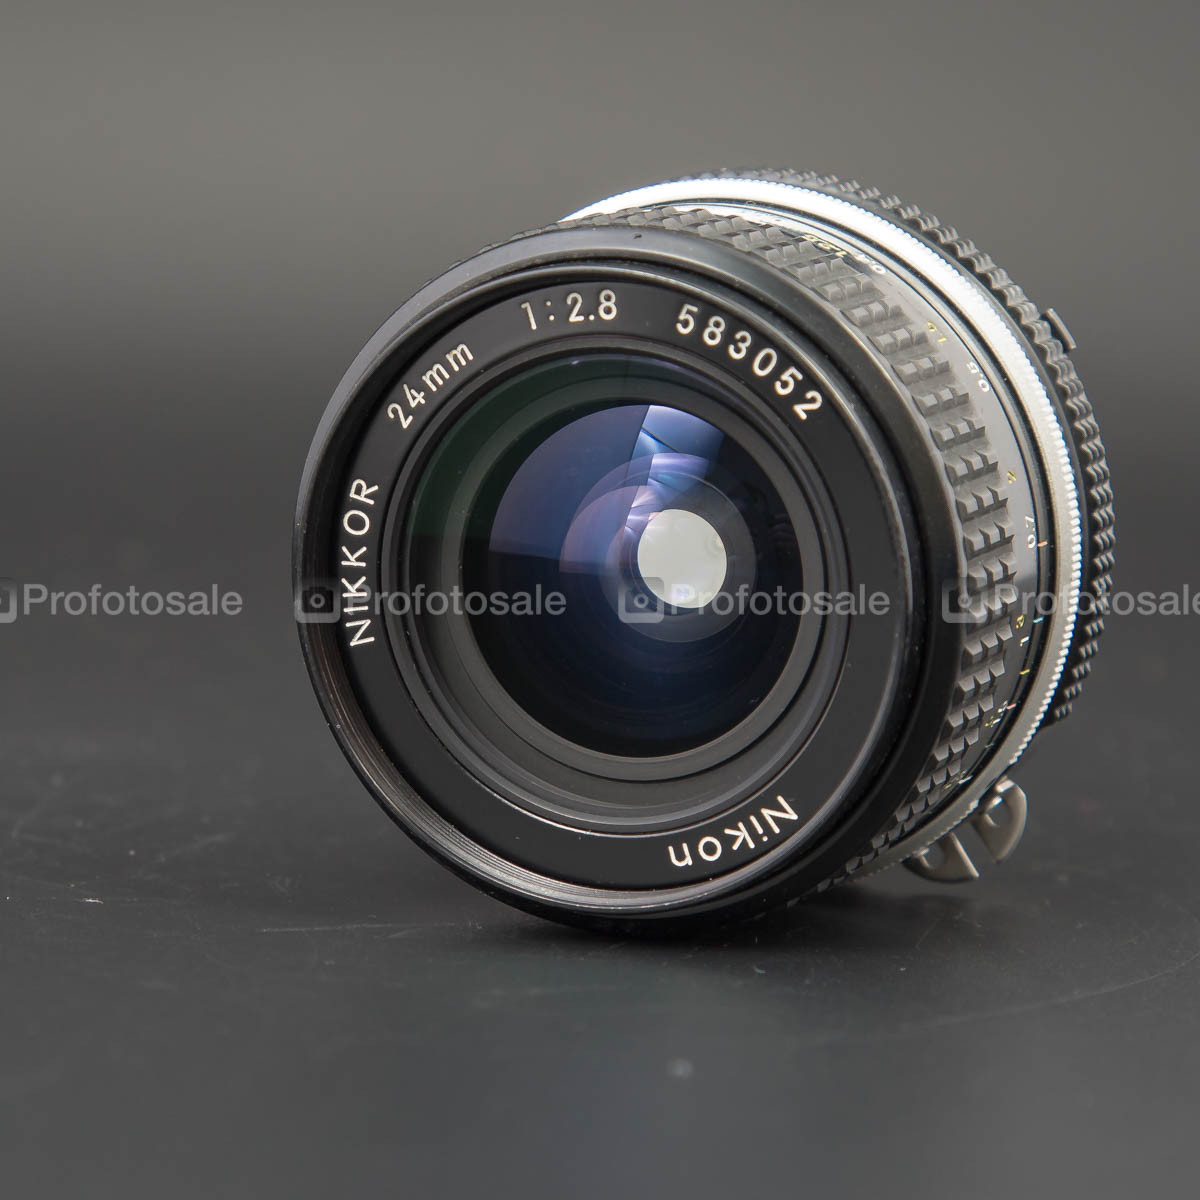 Nikkor MF 24mm f/2.8